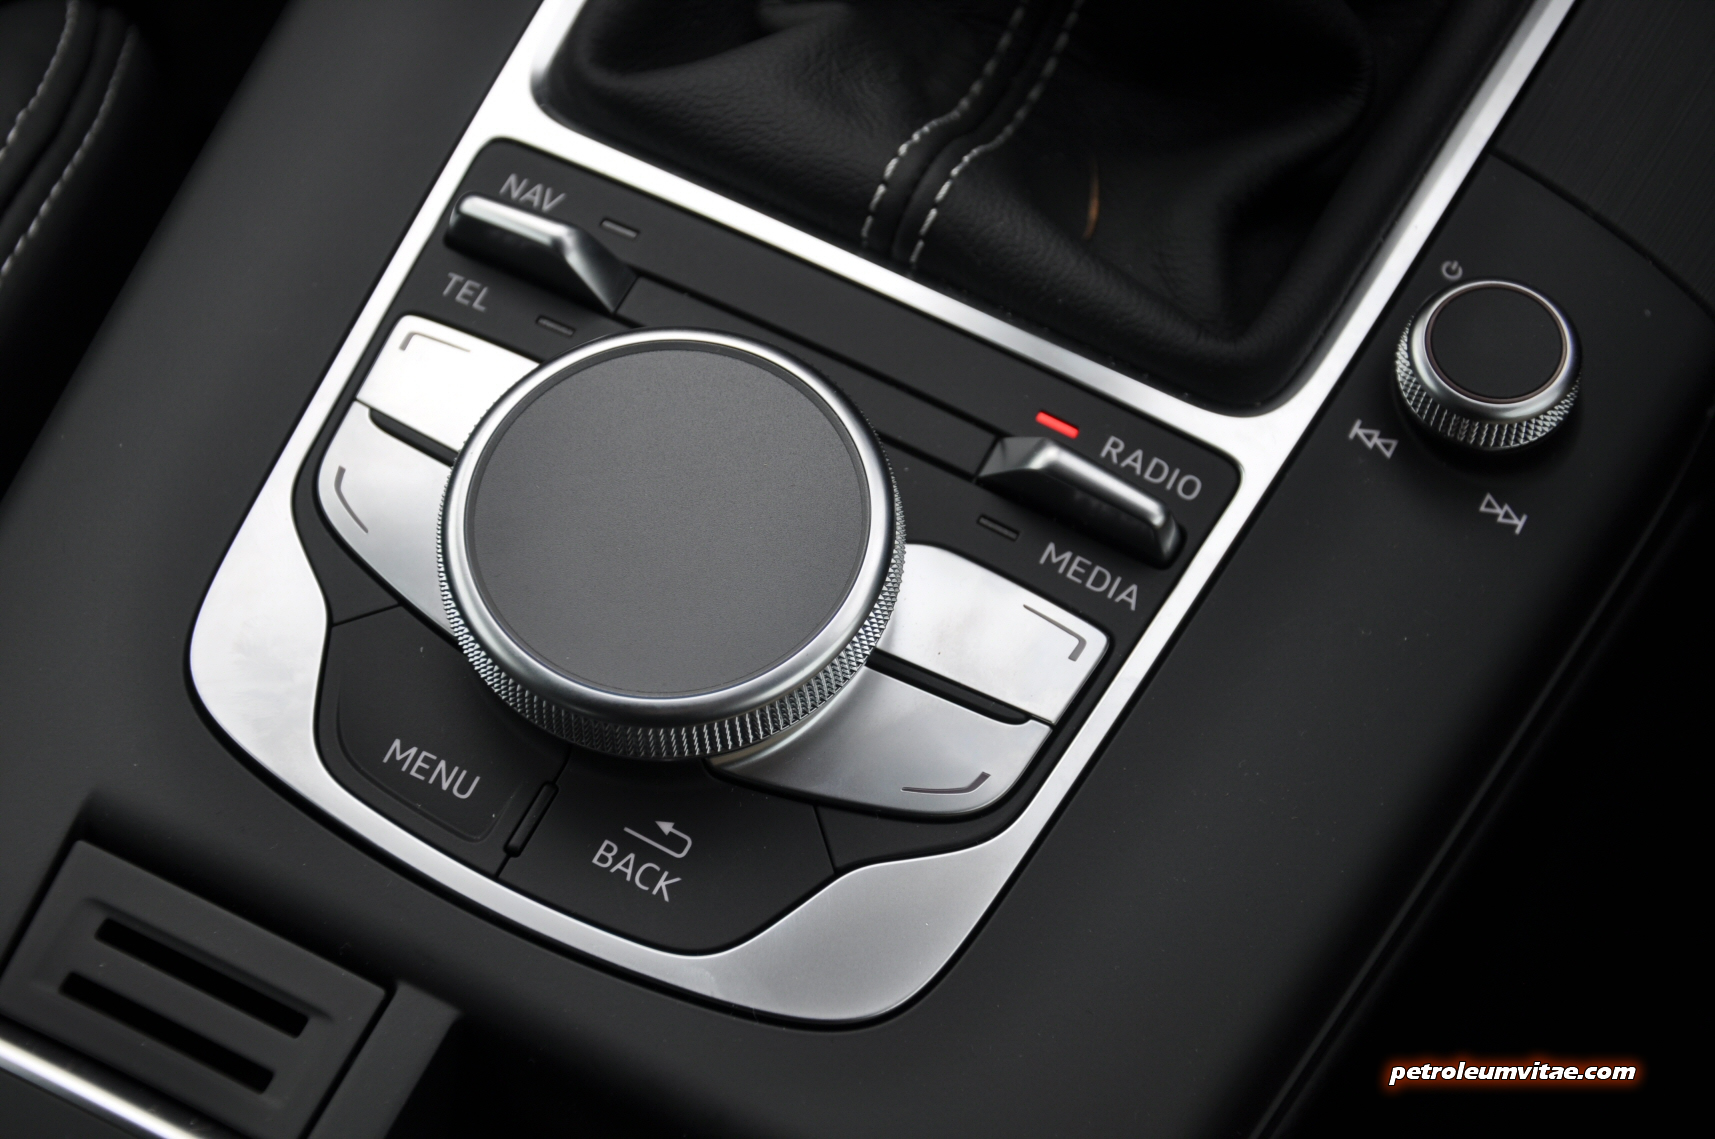 audi a3 bluetooth pairing instructions